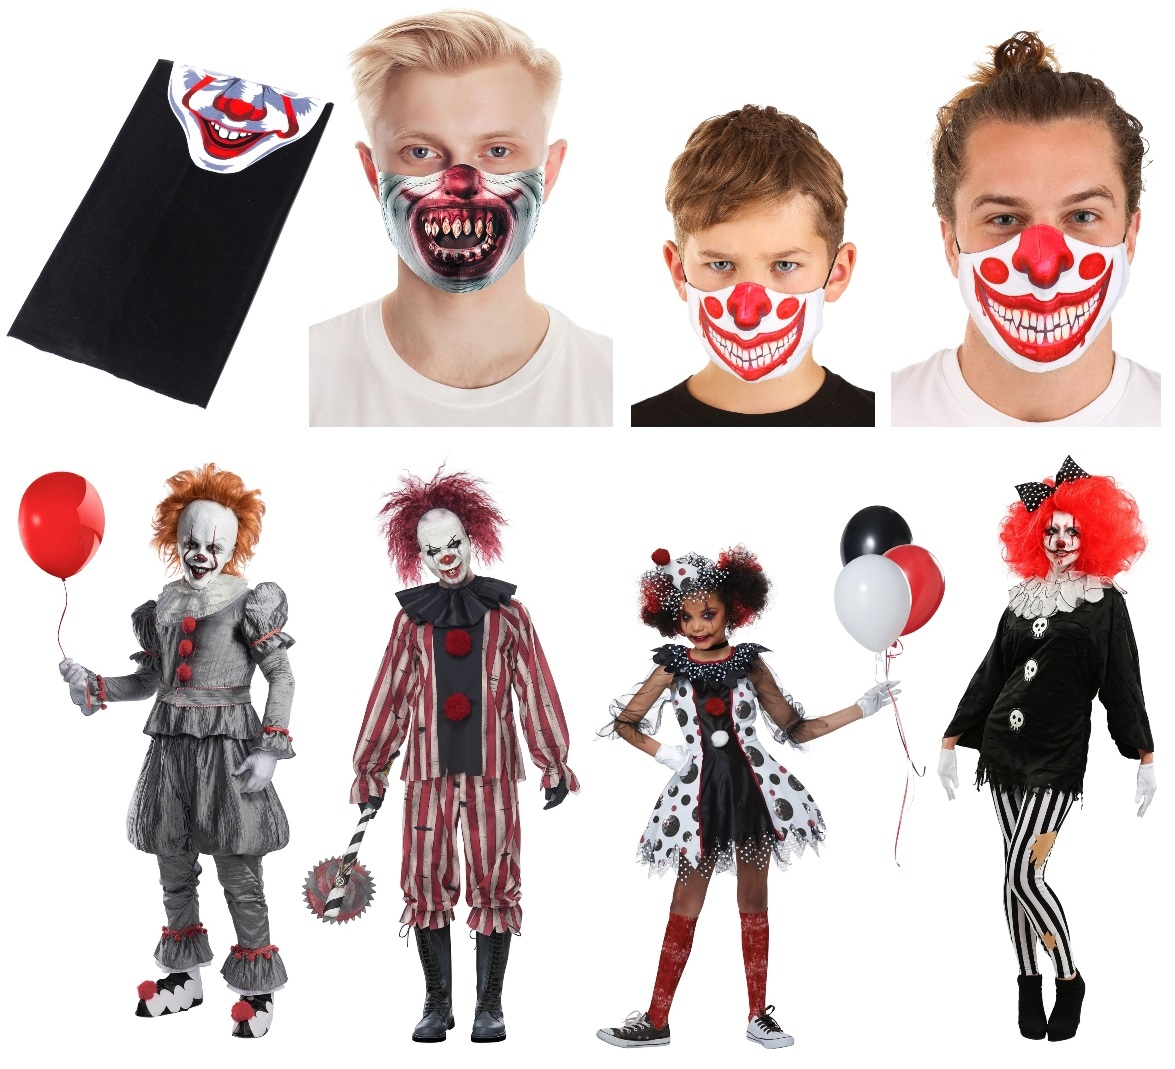 Scary Clown Masks and Costumes